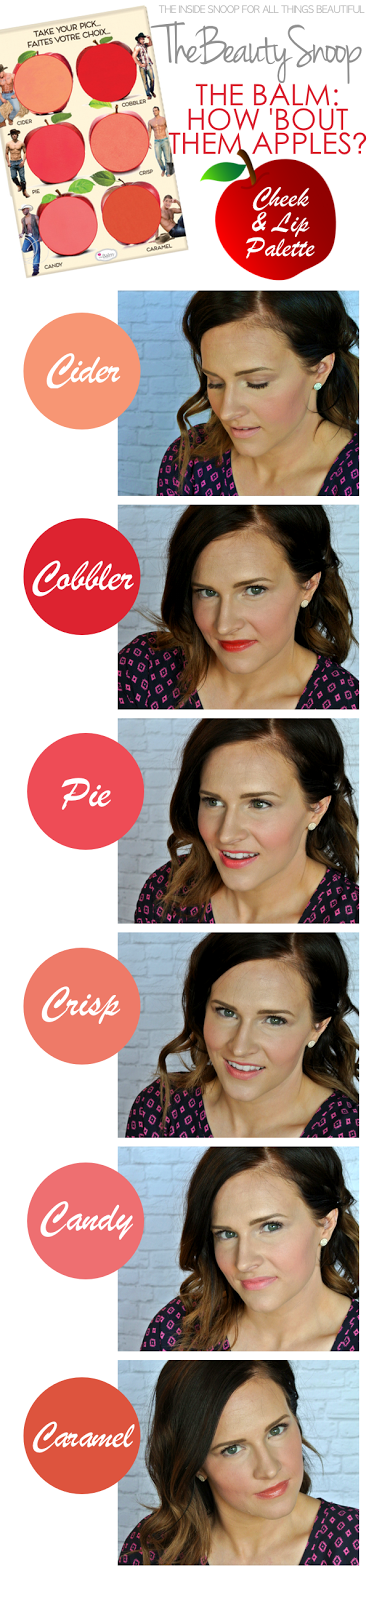 Cream blush and lip color combo makeup, match your cheeks to your lips